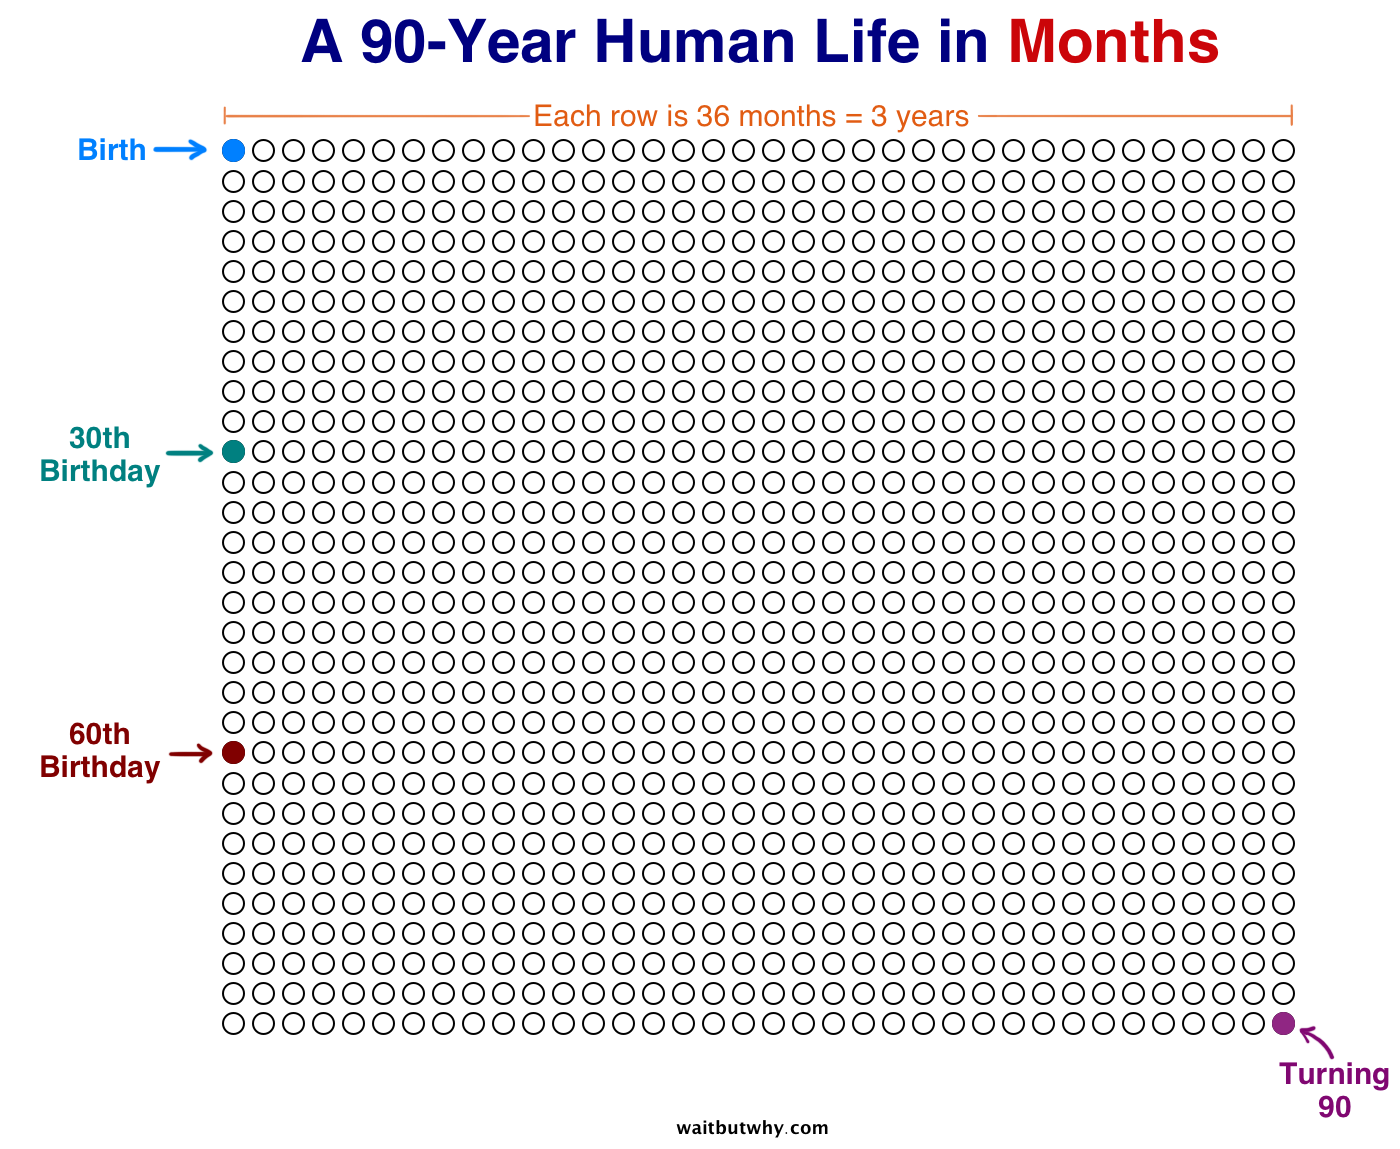 Human Life in Months